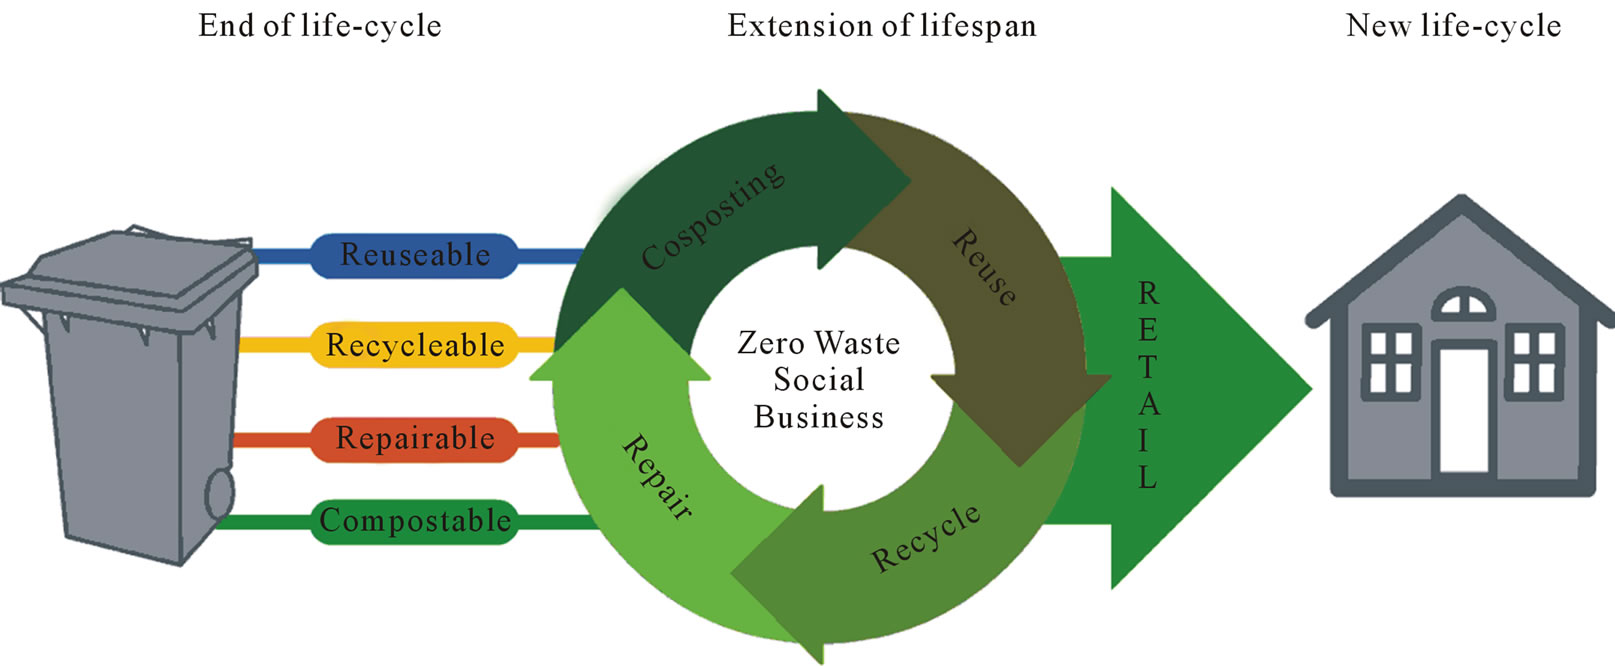 product lifecycle of sprite